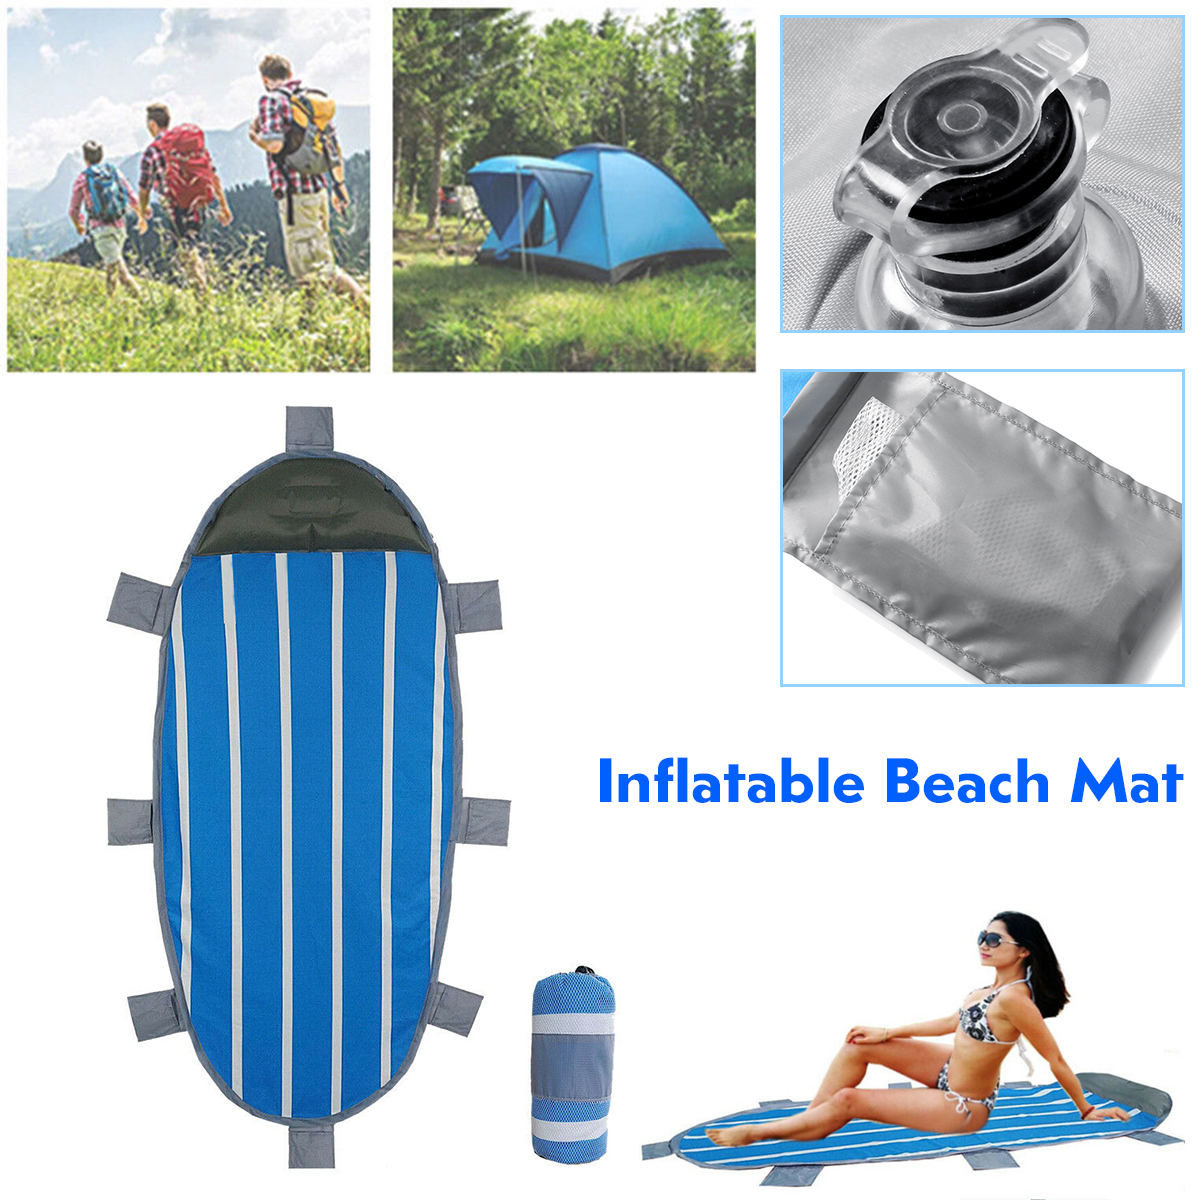 Senmubery Portable Picnic Beach Seat Pad Damp proof Camping Mat Folding Cushion